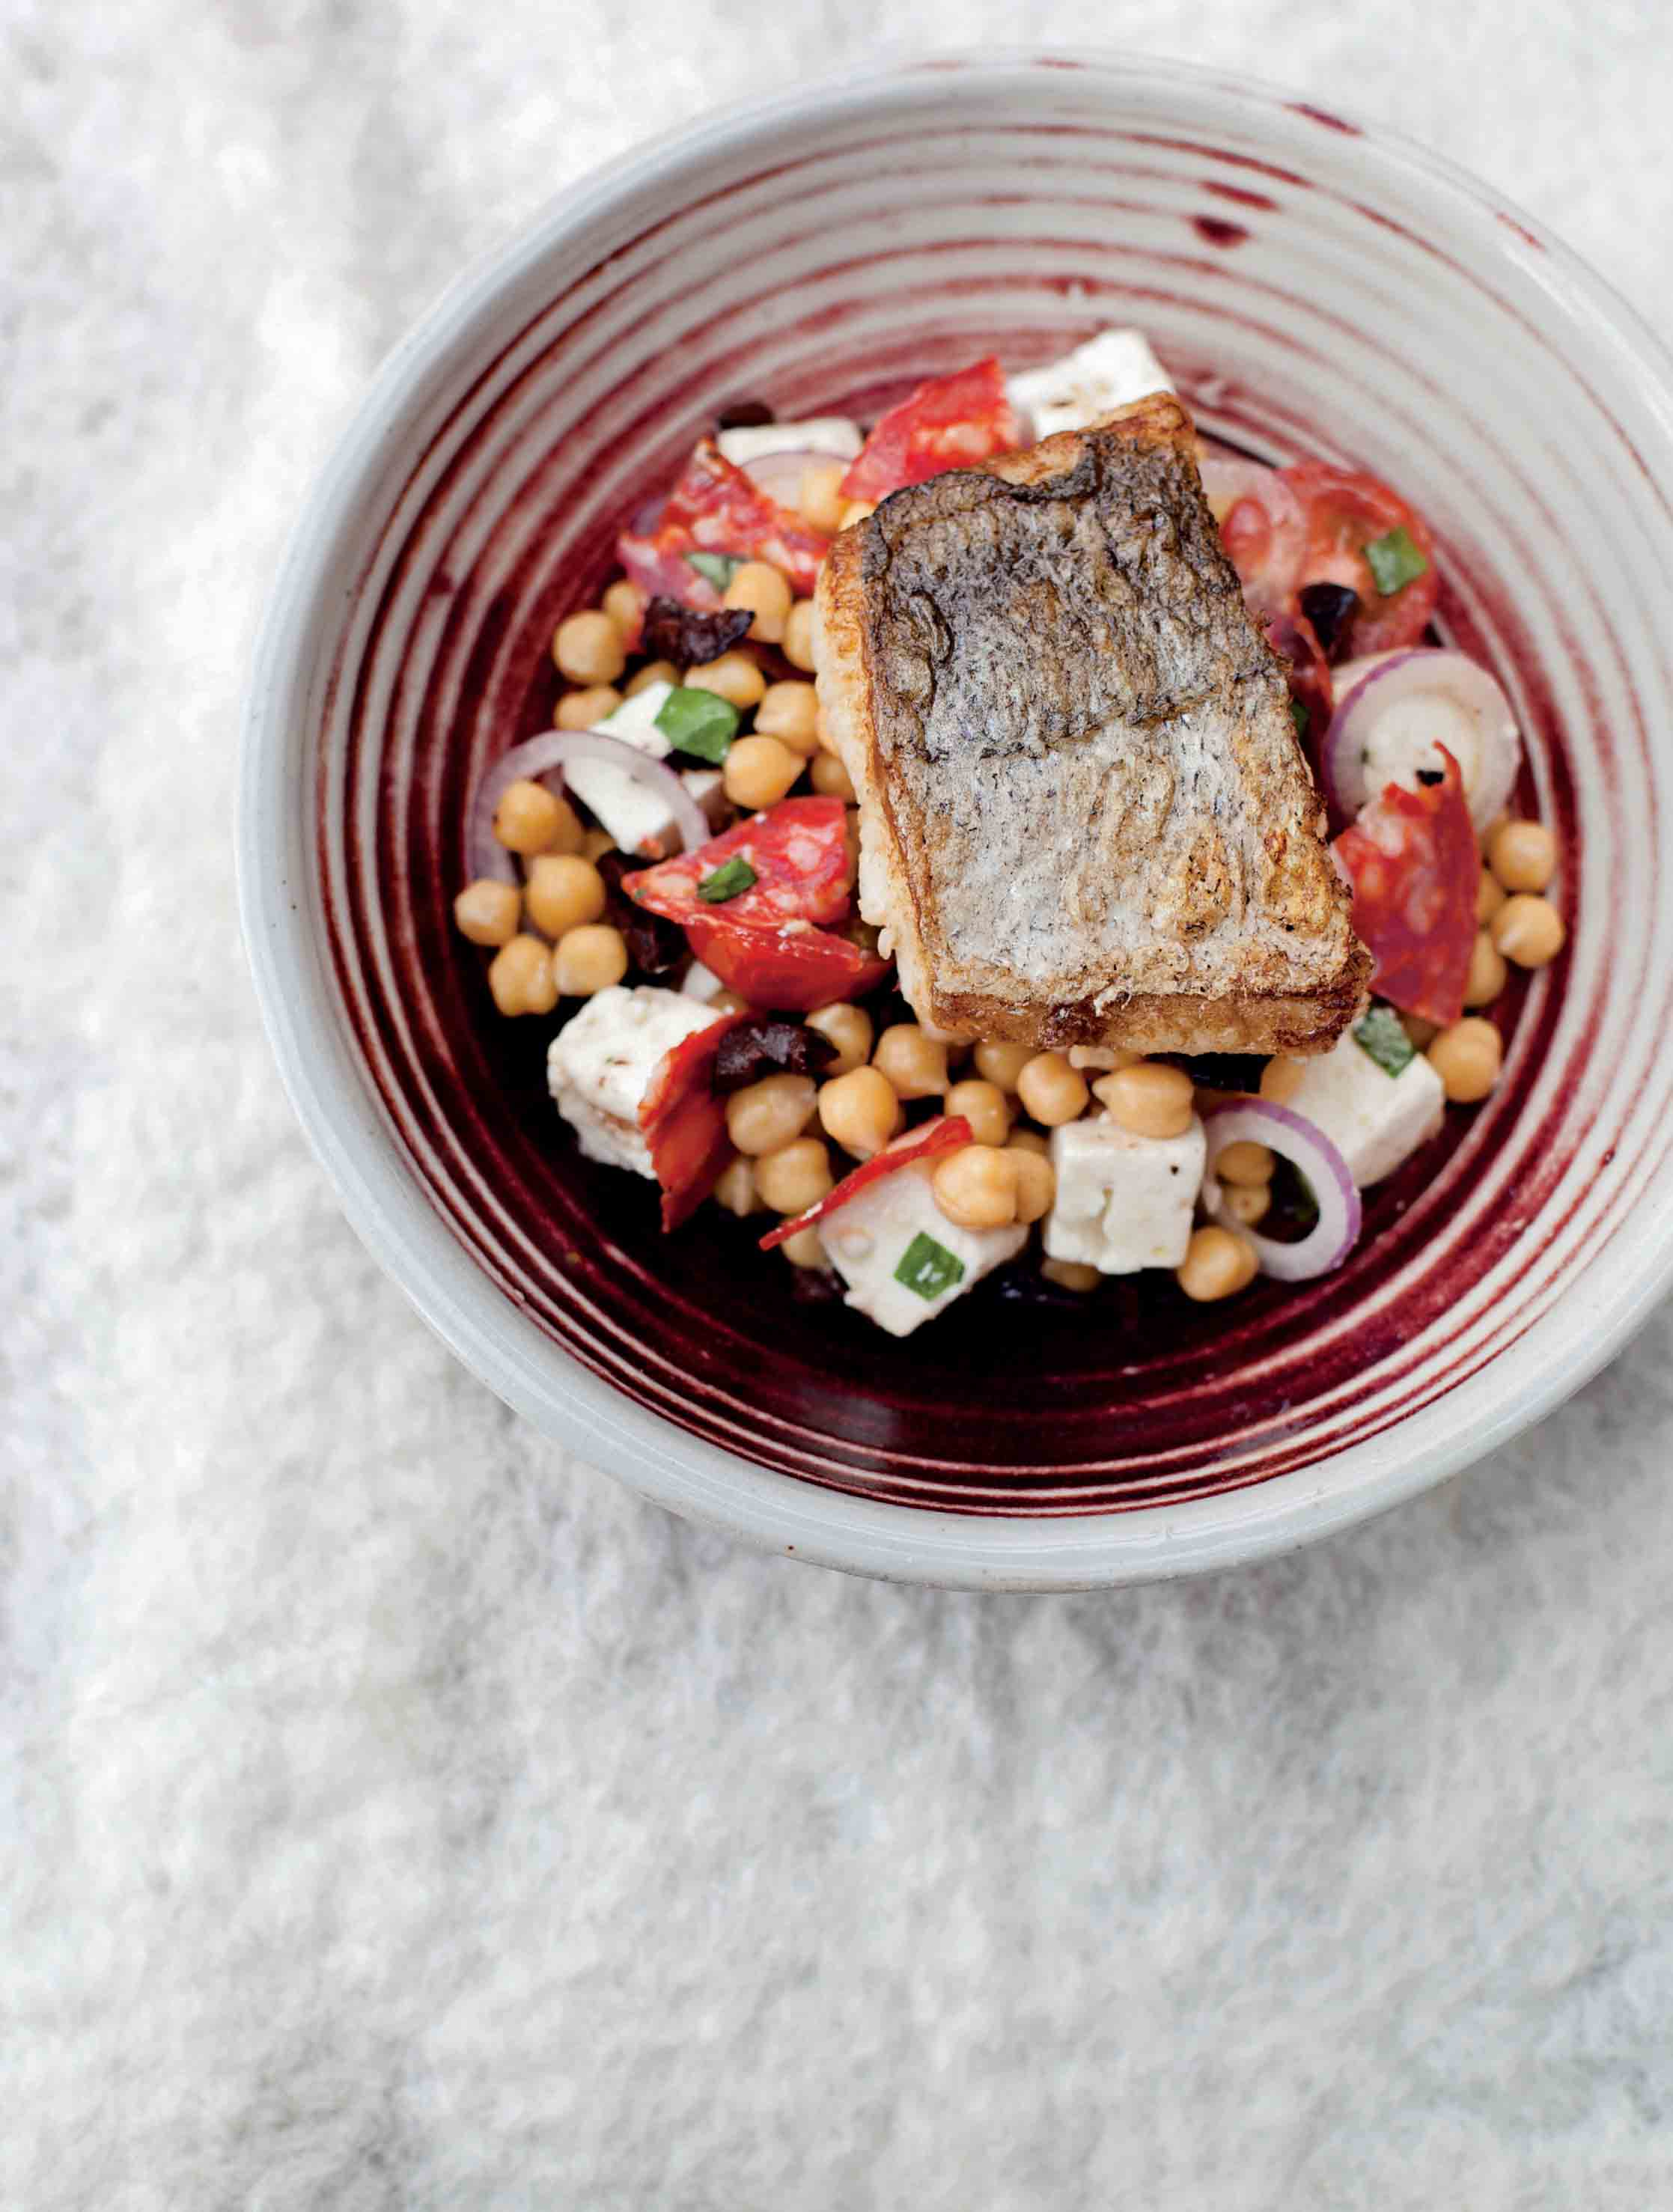 Roasted hake with chickpea, feta and red onion salad